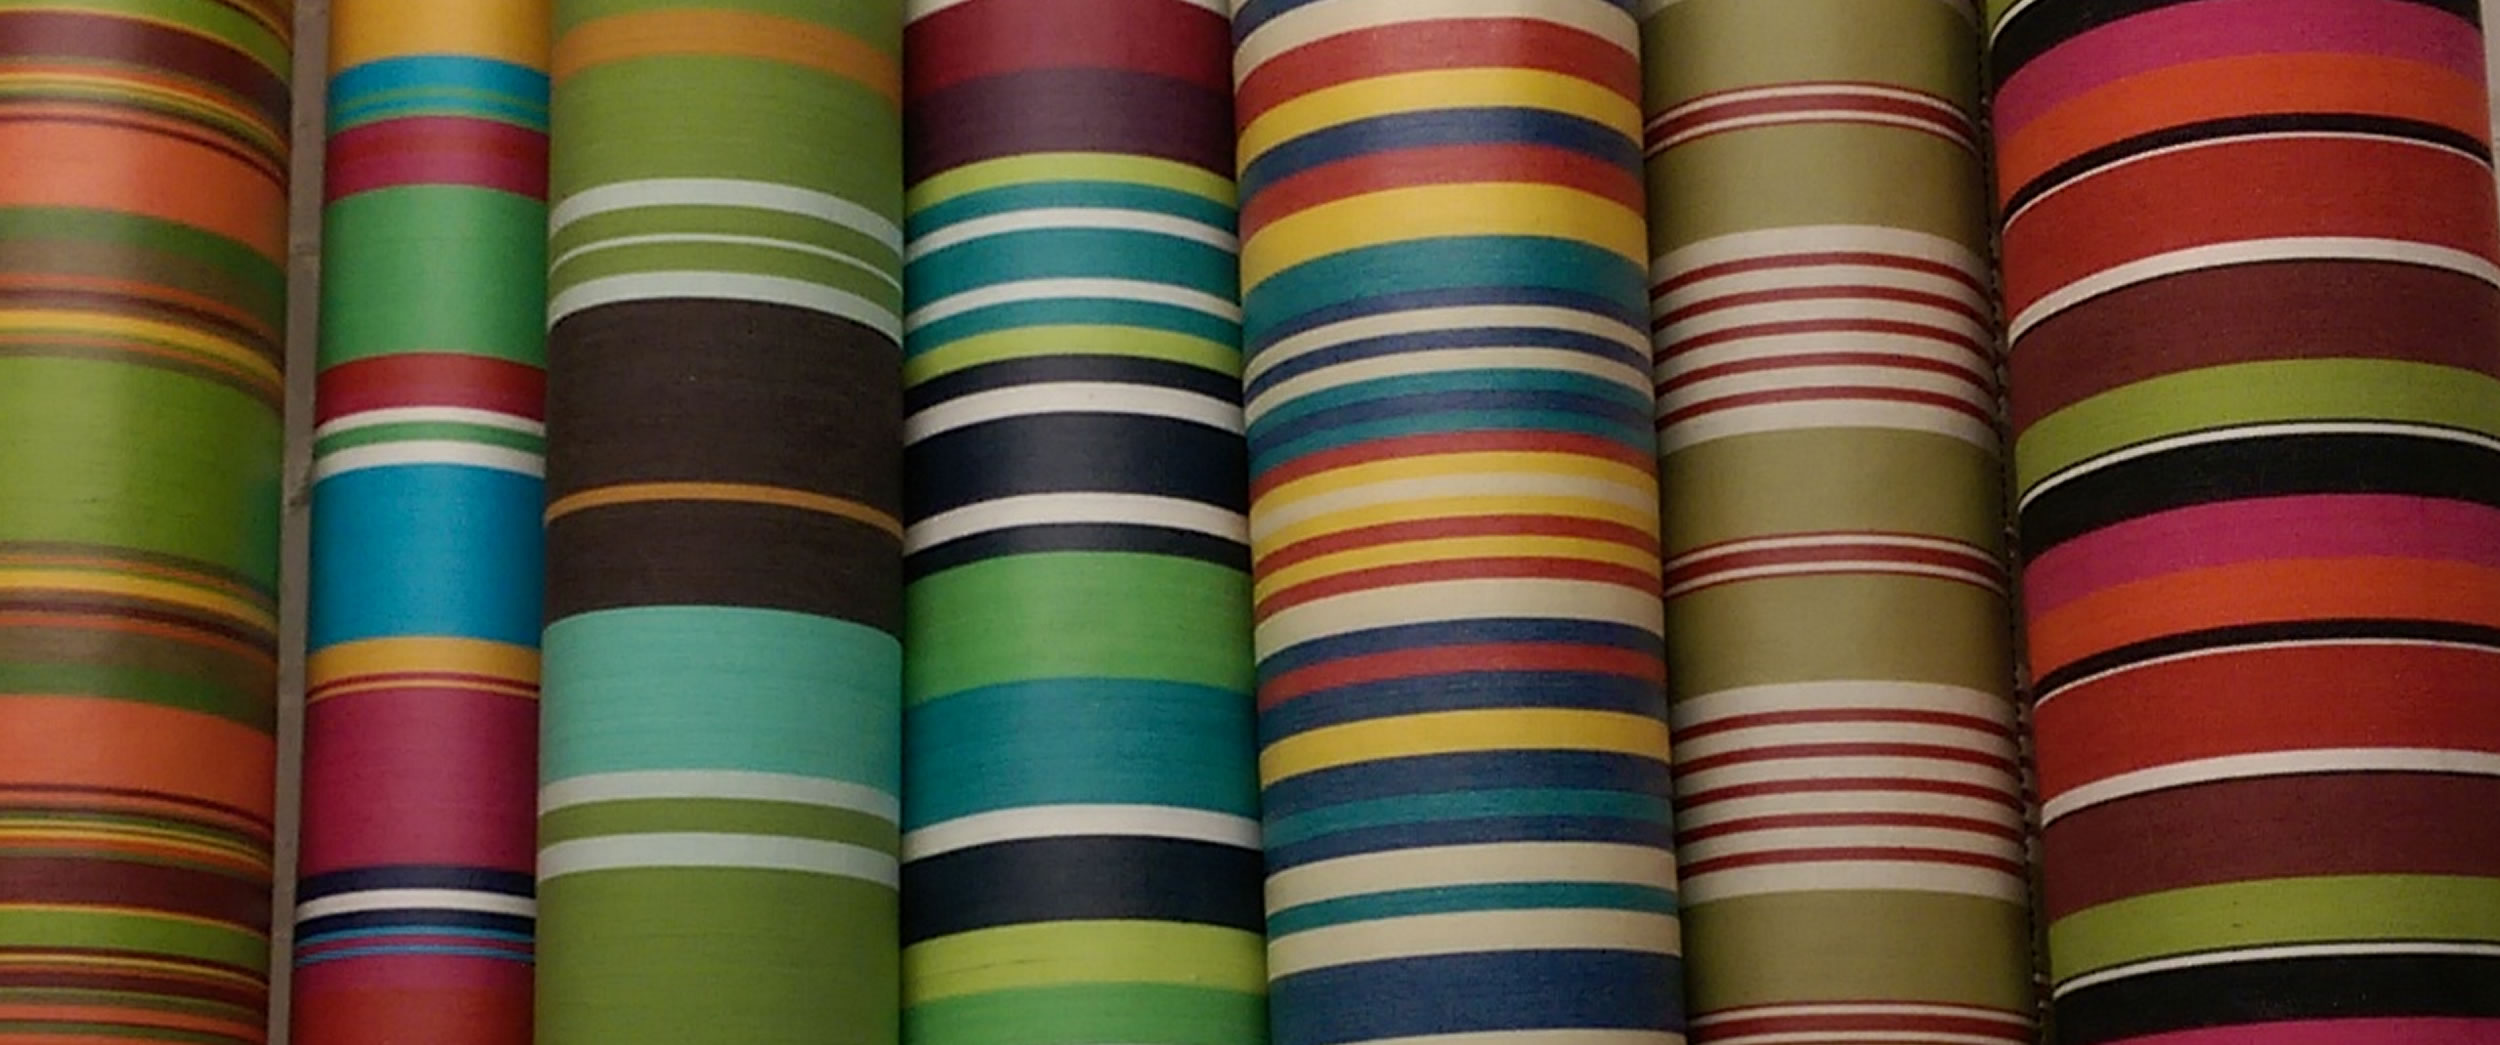 Pink, Coral, Black, Lime Green Striped Oilcloth Fabric | Wipeable Fabrics | Wipe Clean Oilcloth Coated Fabrics